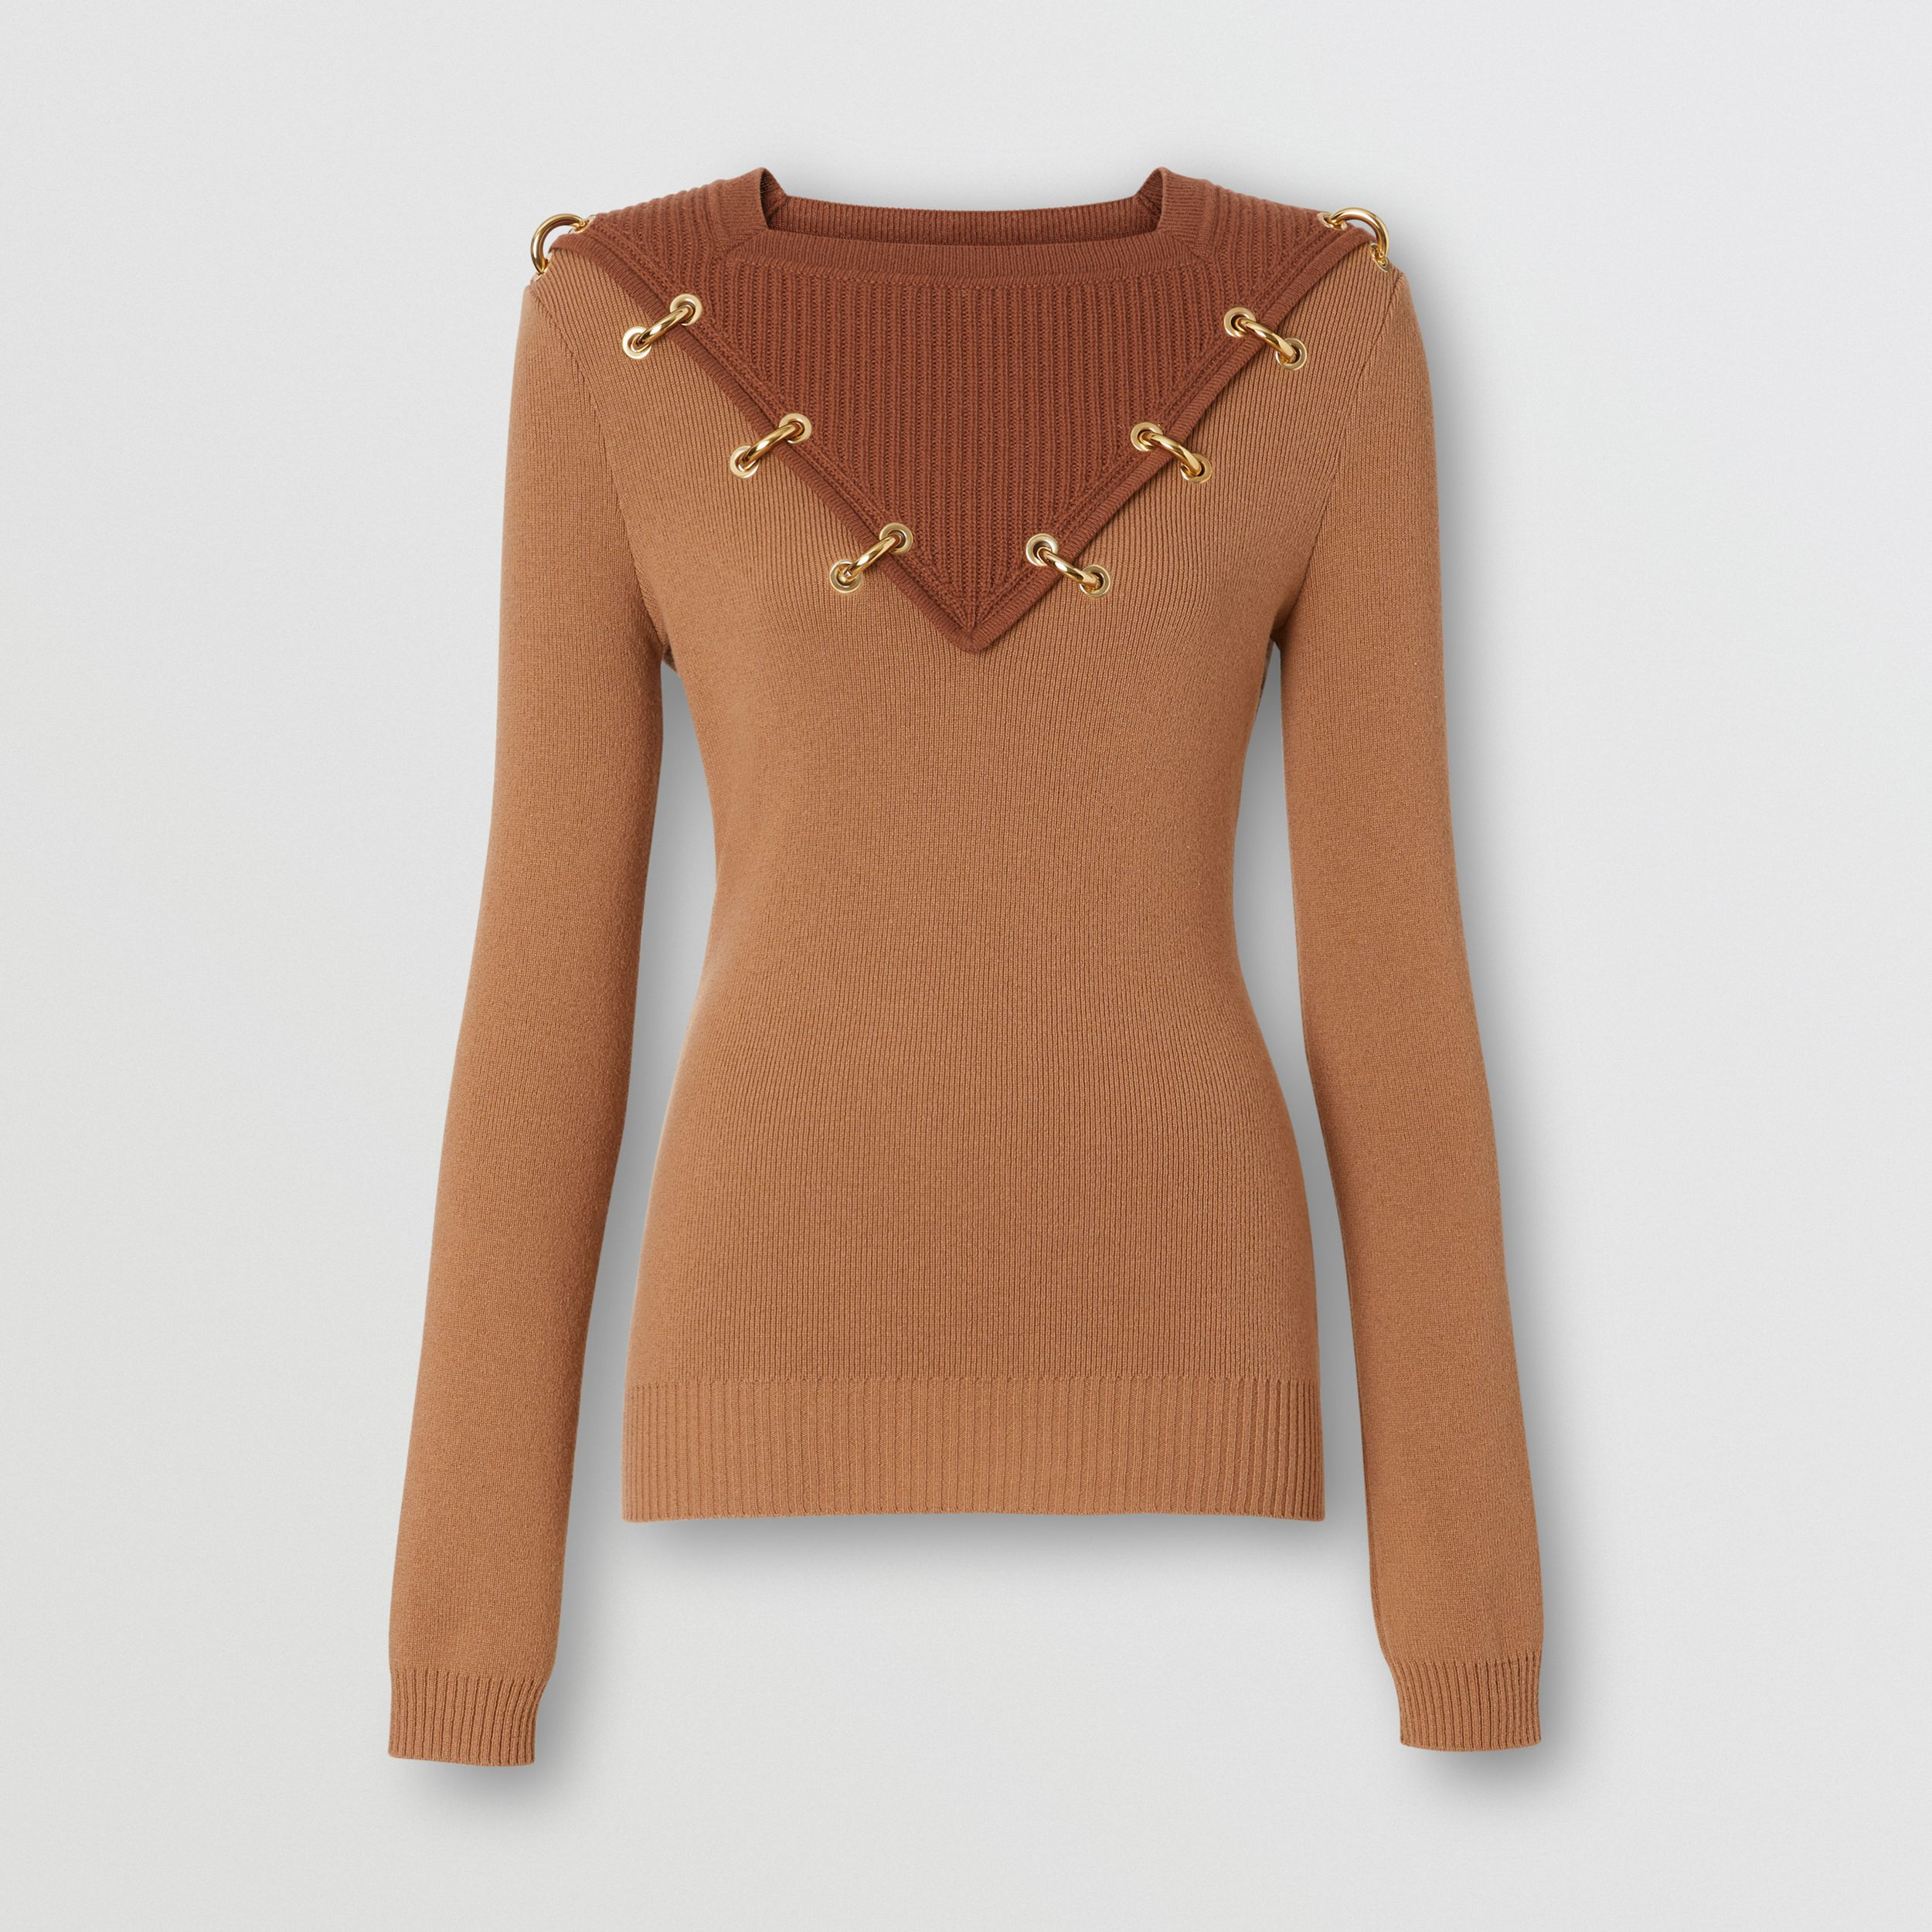 Ring-pierced Two-tone Wool Cashmere Sweater in Warm Camel - Women | Burberry - 4